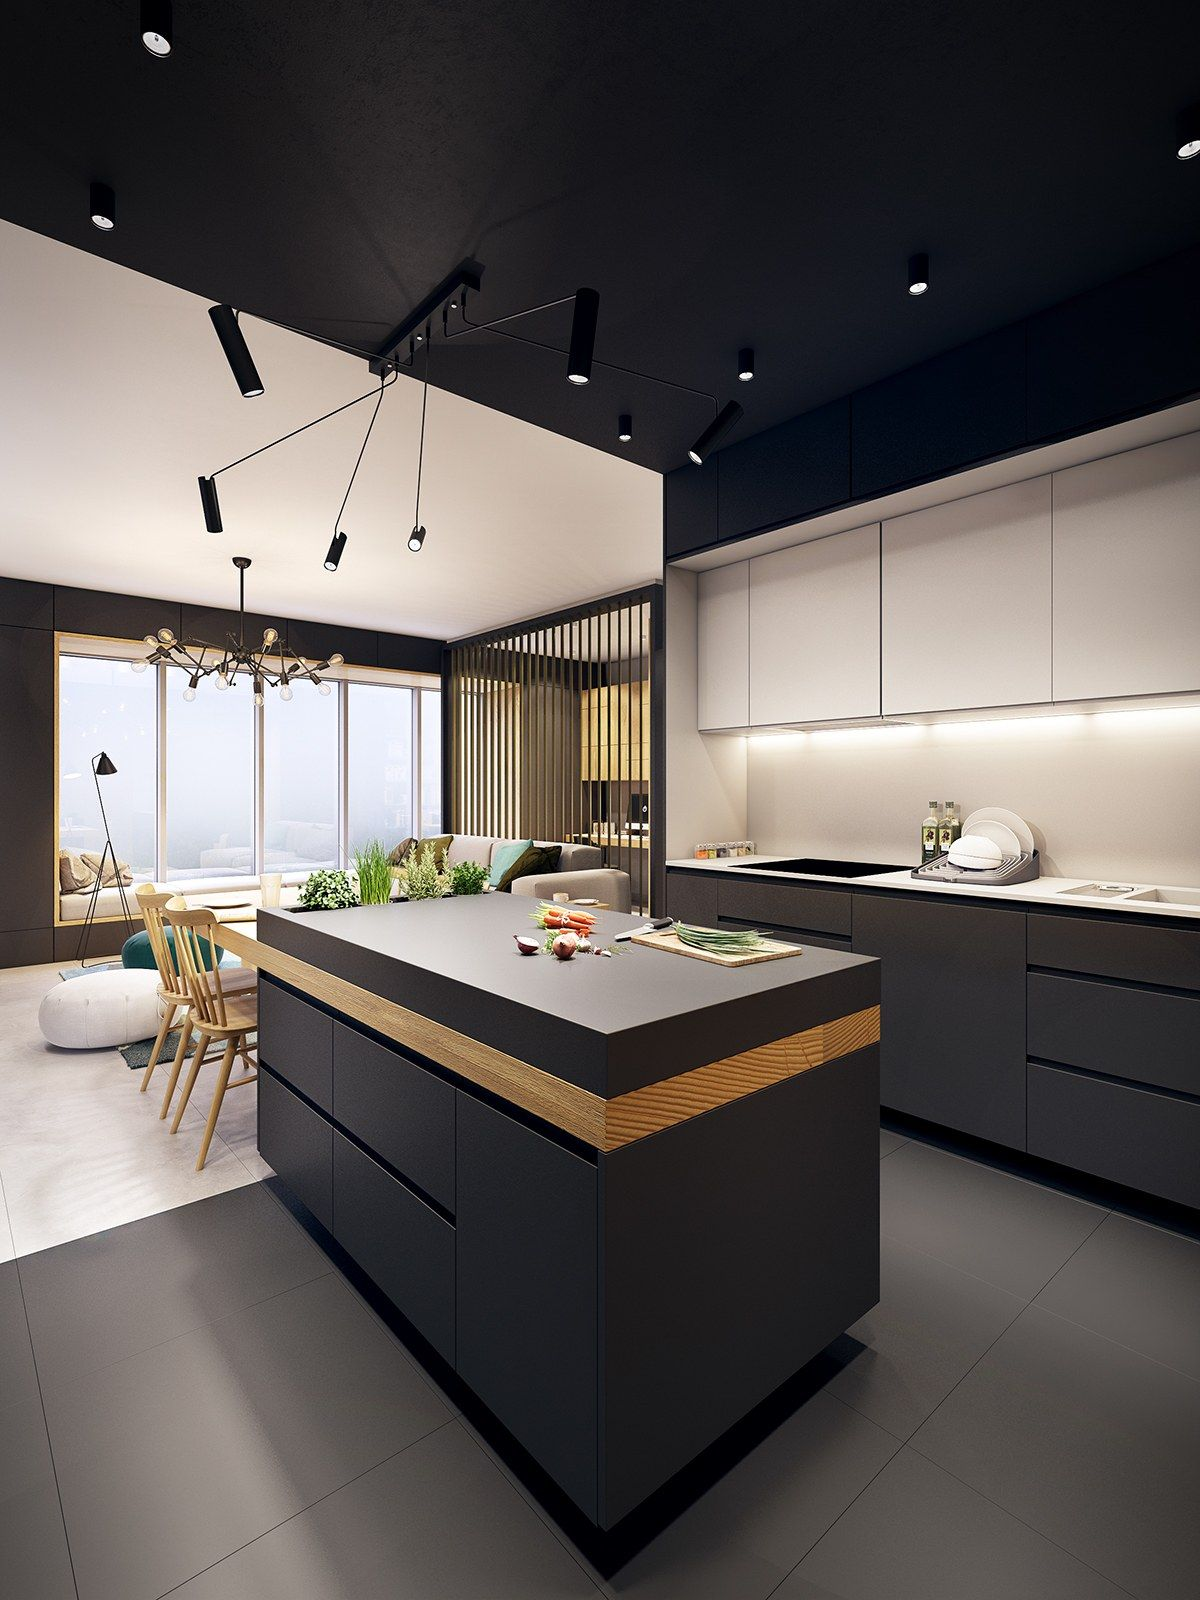 this contemporary apartment pops with turquoise accents kitchen designs pinterest madeira on kitchen decor themes modern id=36212